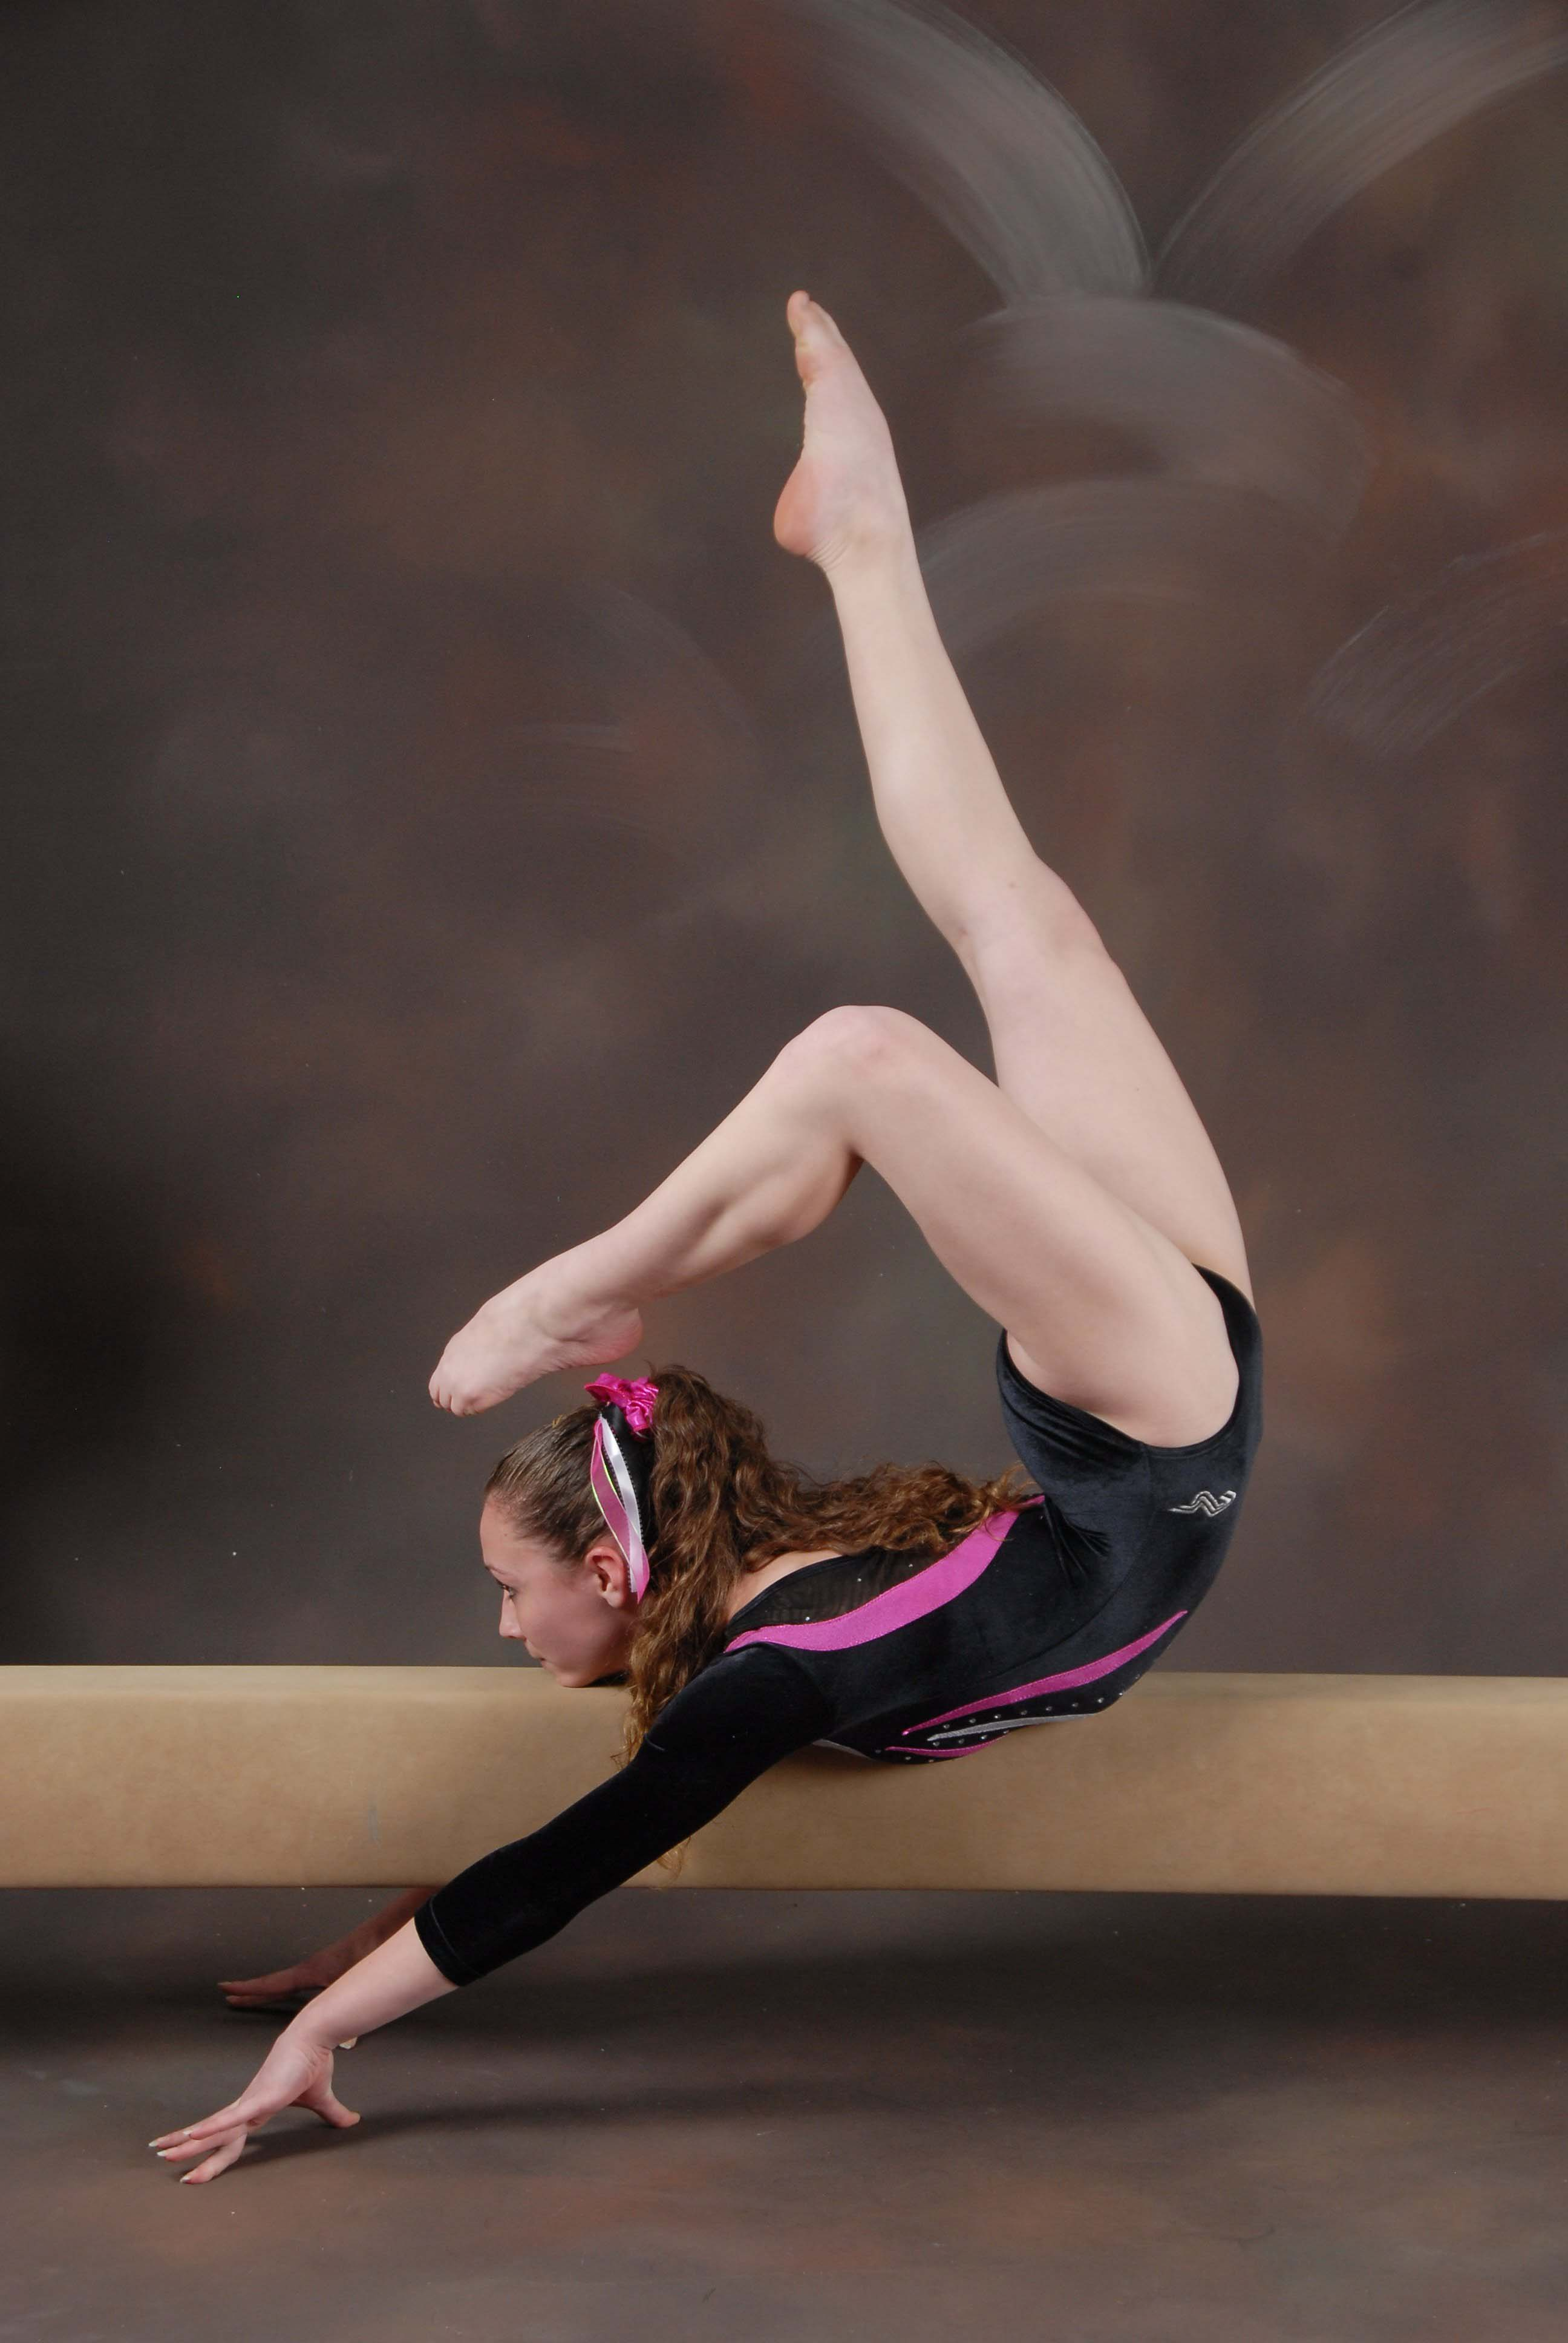 Gymnast Victoria Cunningham strikes a pose at Artistic Gymnastics in Suffolk, Long Island.